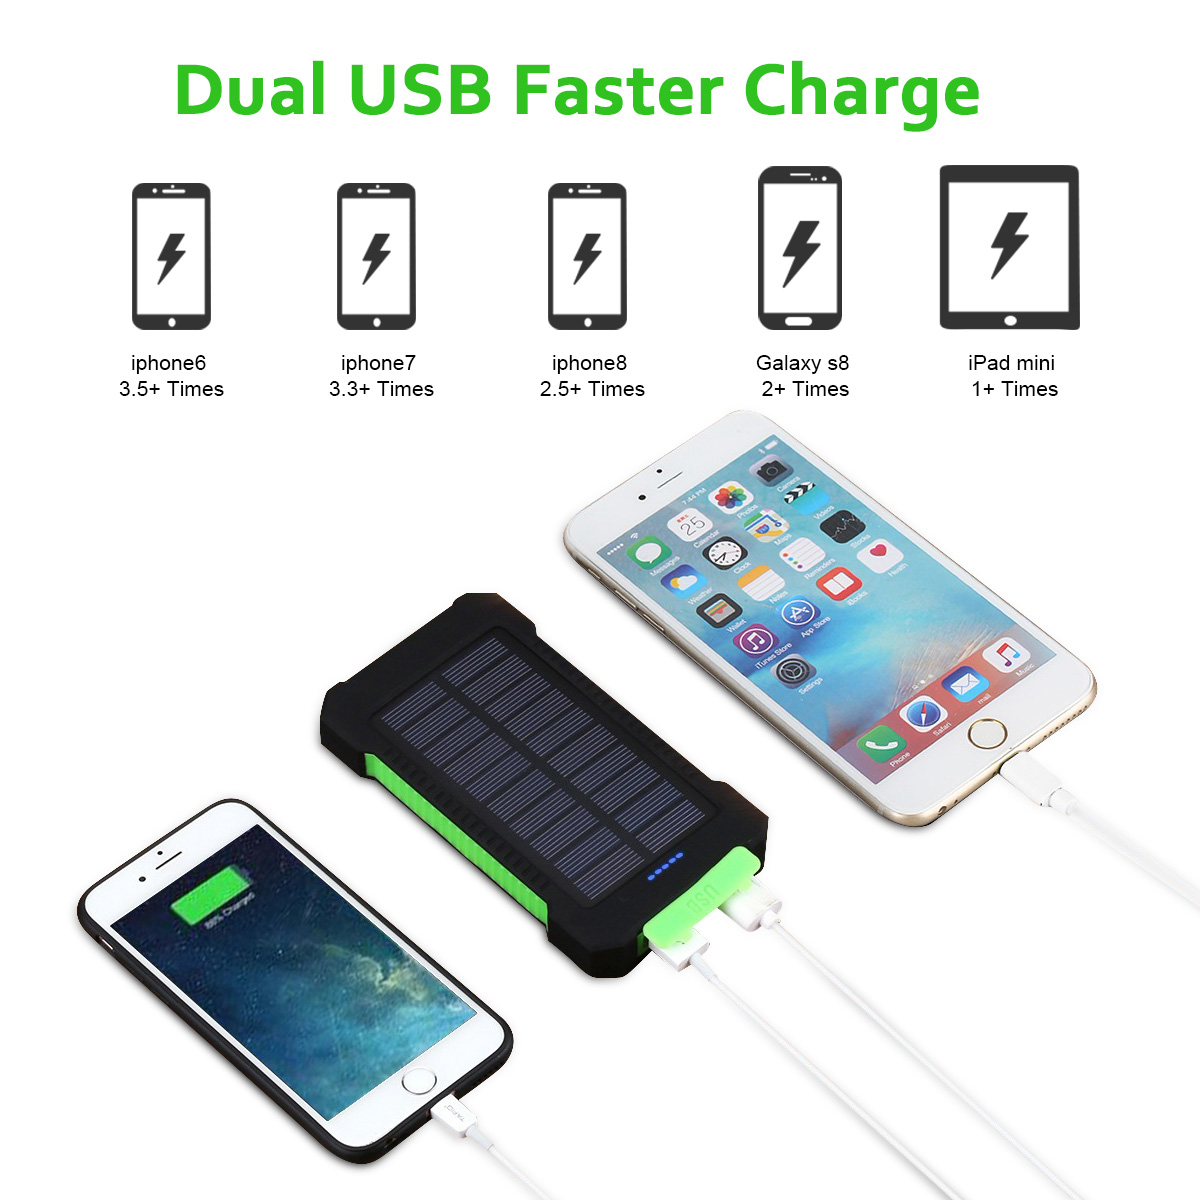 10000mah Waterproof Solar Power Bank External Battery Charger Powerbank Portable Fan 2 In 1 High Capacity Built Lithium Equipped With A Compact Panel Which Could Recharge The Itself Under